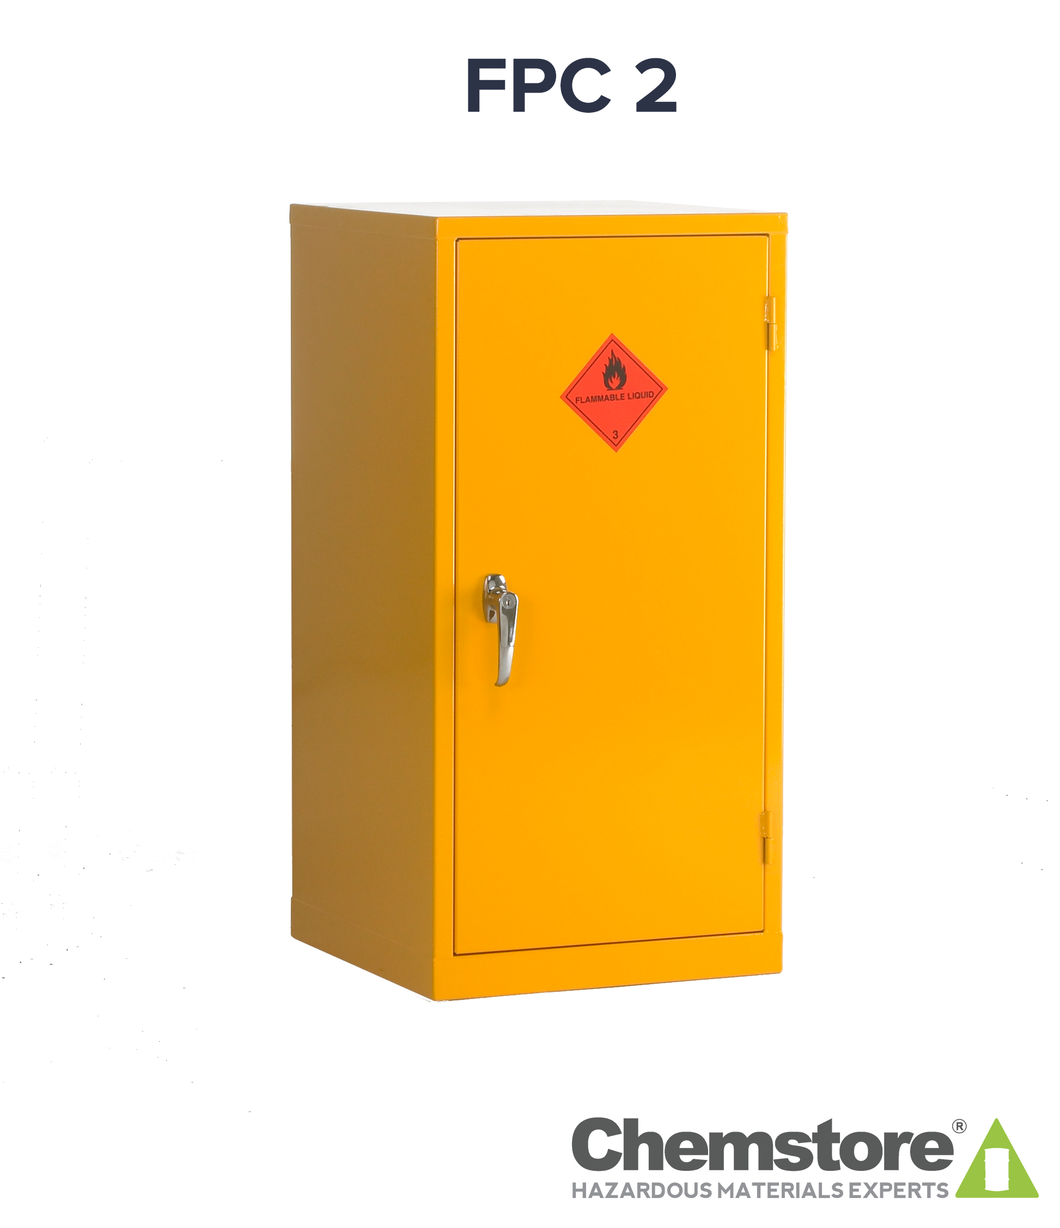 Flame Proof Cabinets FPC 2